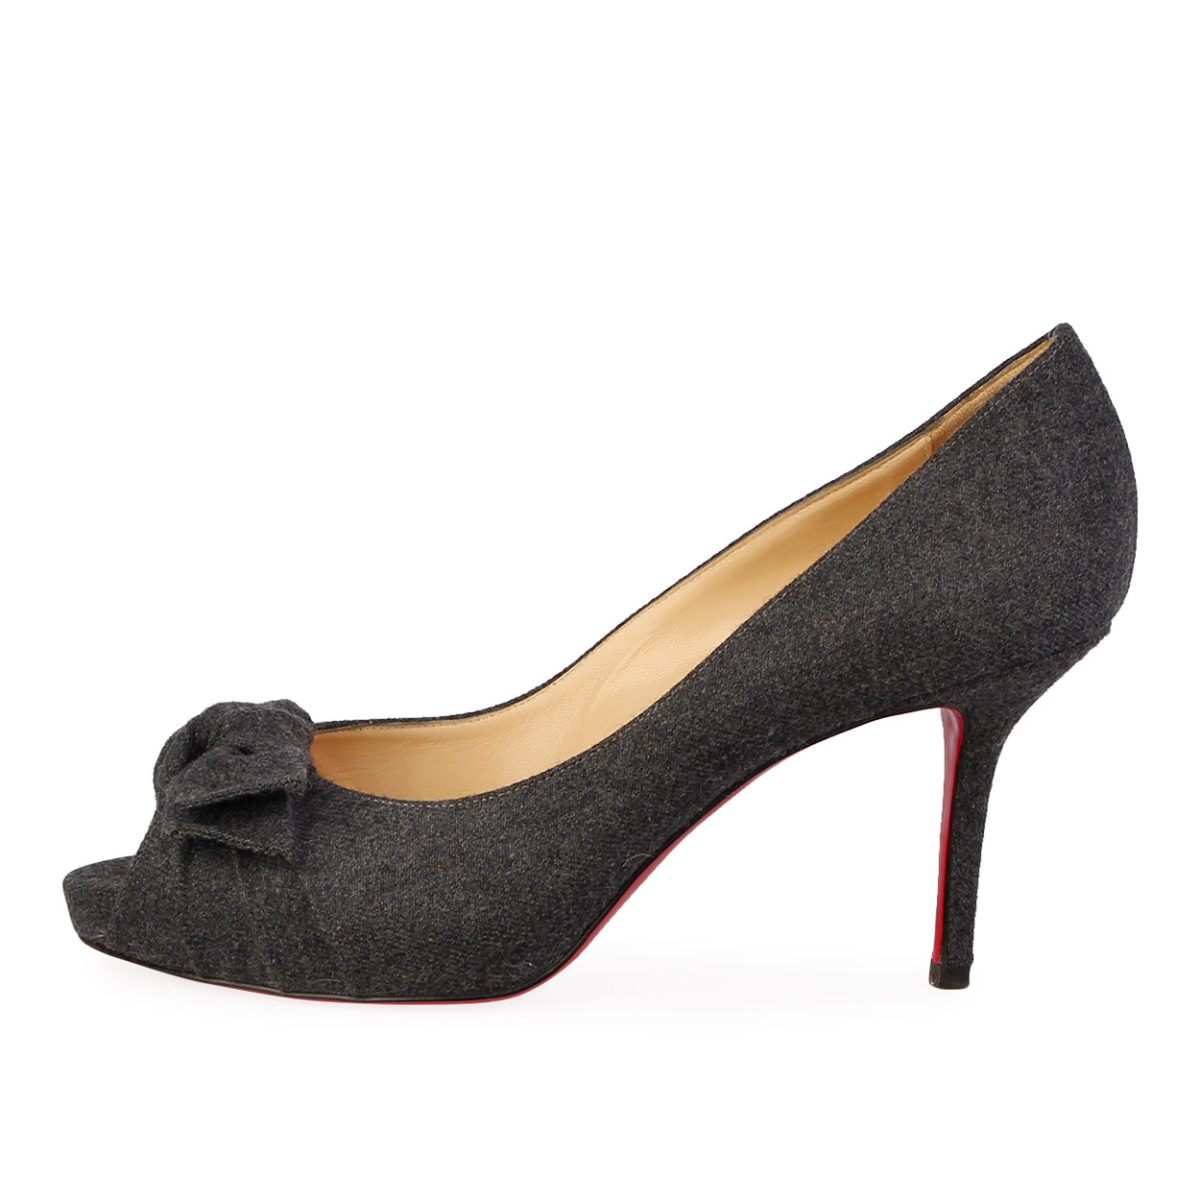 3eed572e1729 CHRISTIAN LOUBOUTIN Flannel Madame Butterfly Pumps Dark Grey - S  40 ...